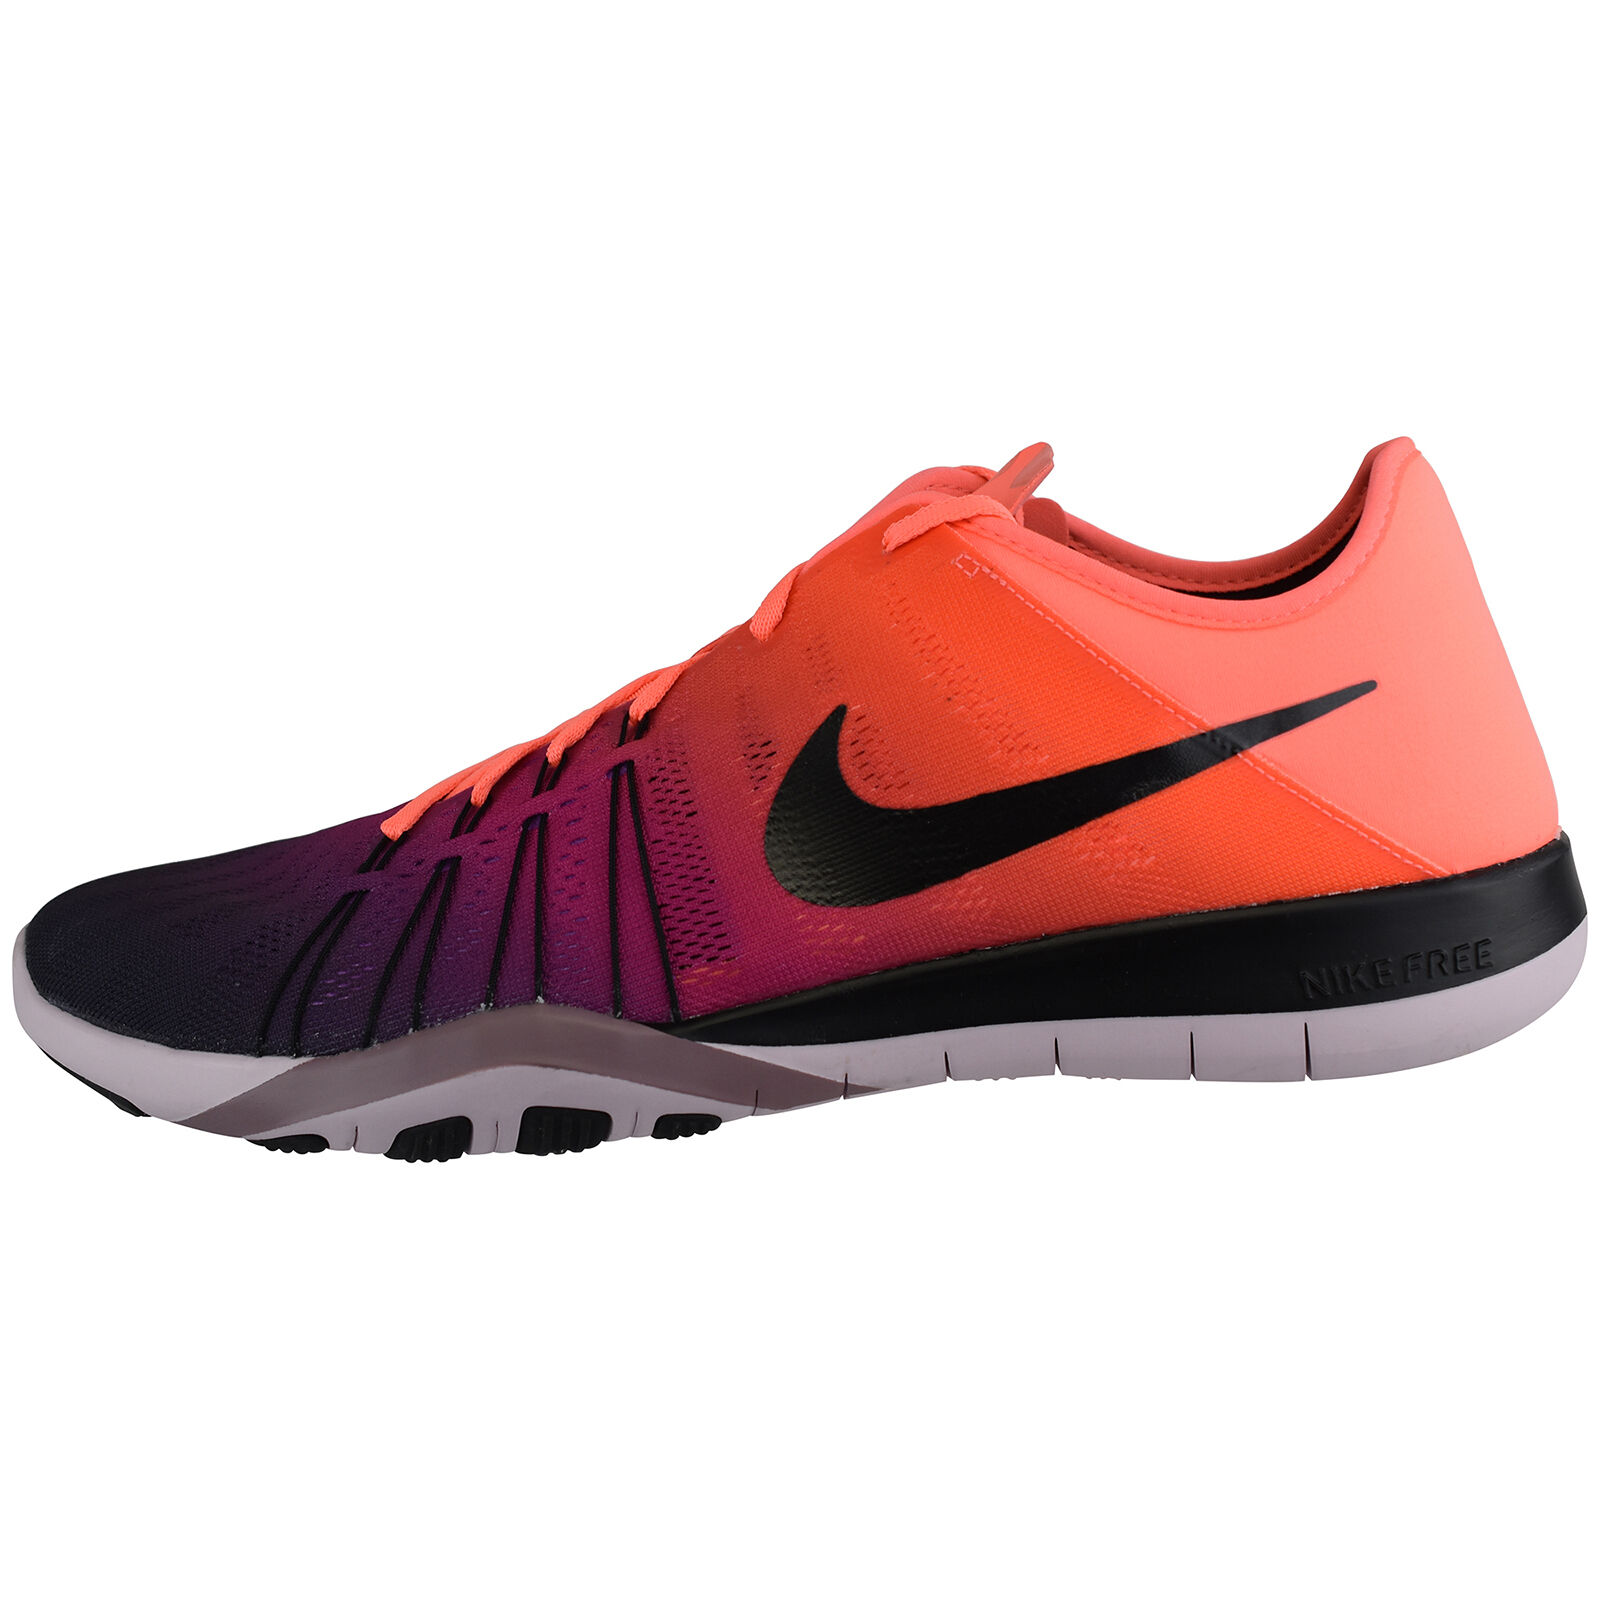 Wmns Nike Free Tr 6 Spctrm 849804-800 Lifestyle Running shoes Run Casual